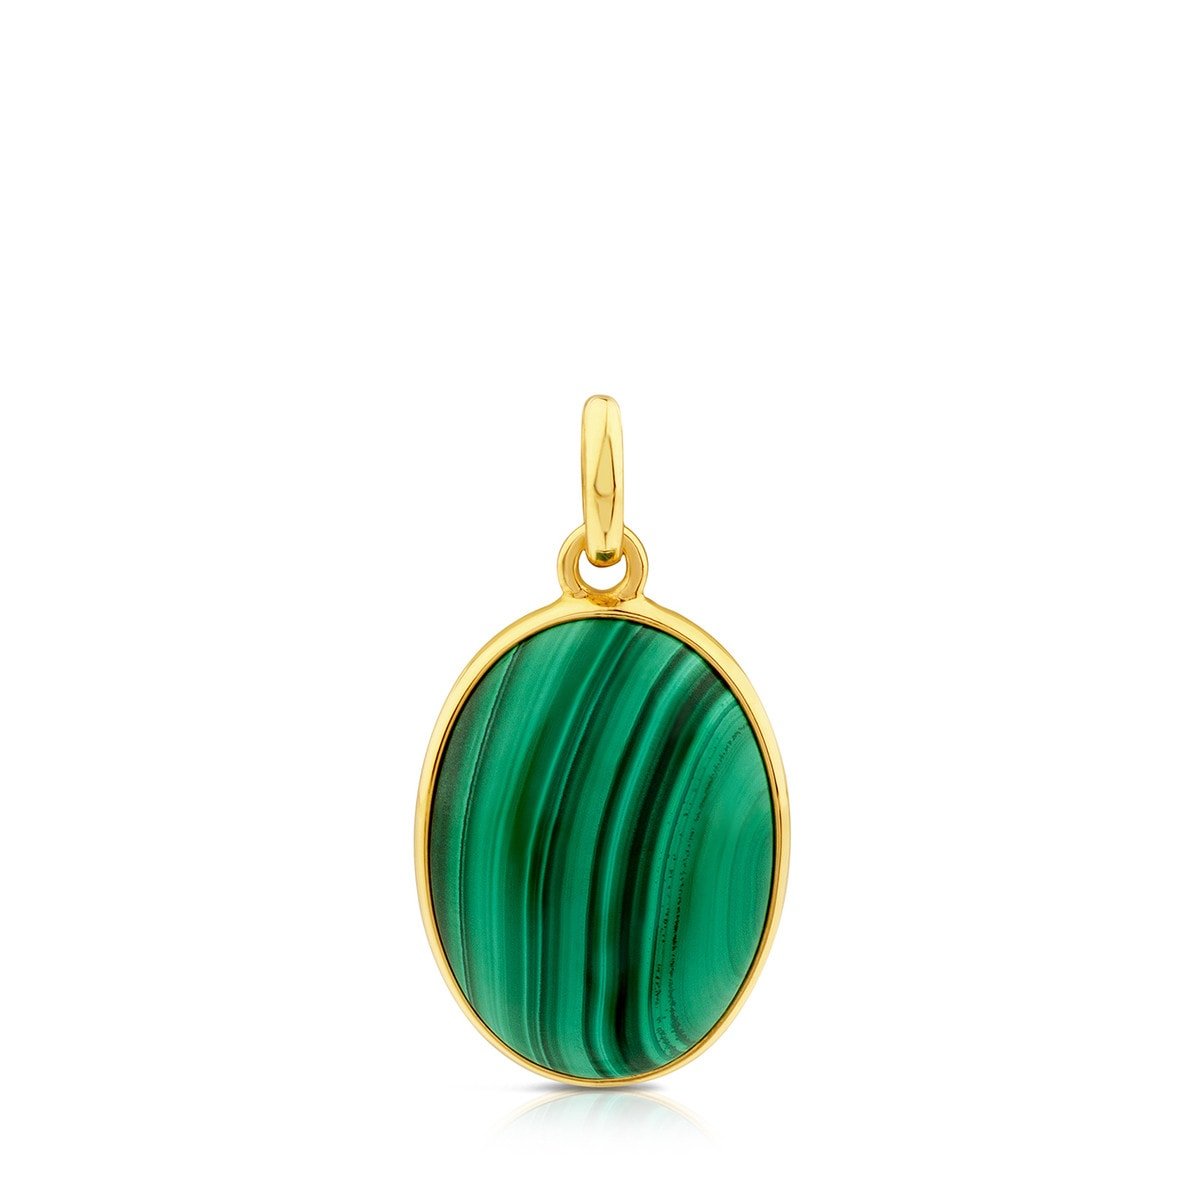 Vermeil Silver Camee Pendant with Malachite